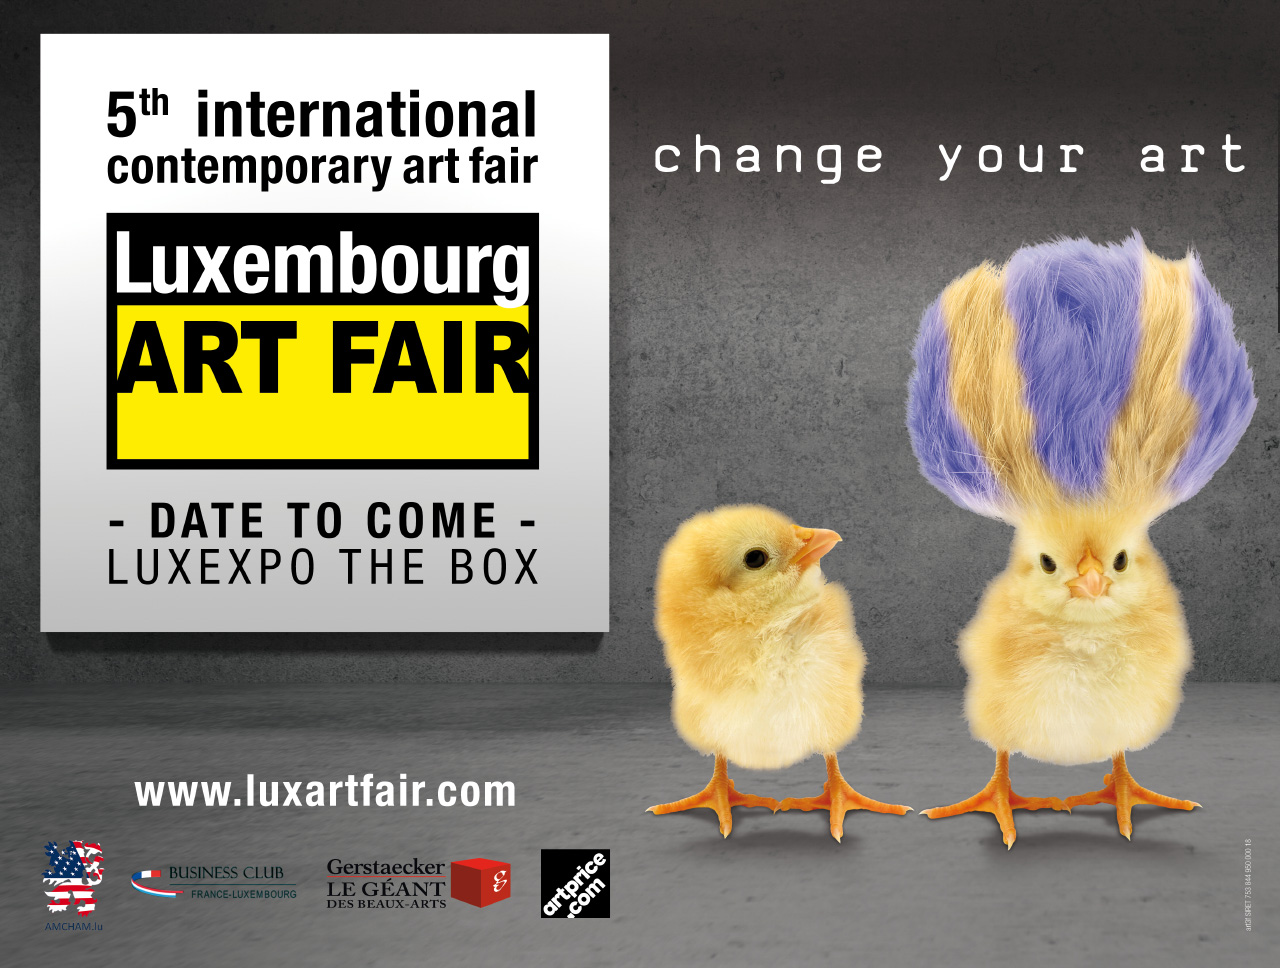 Luxembourg ART FAIR